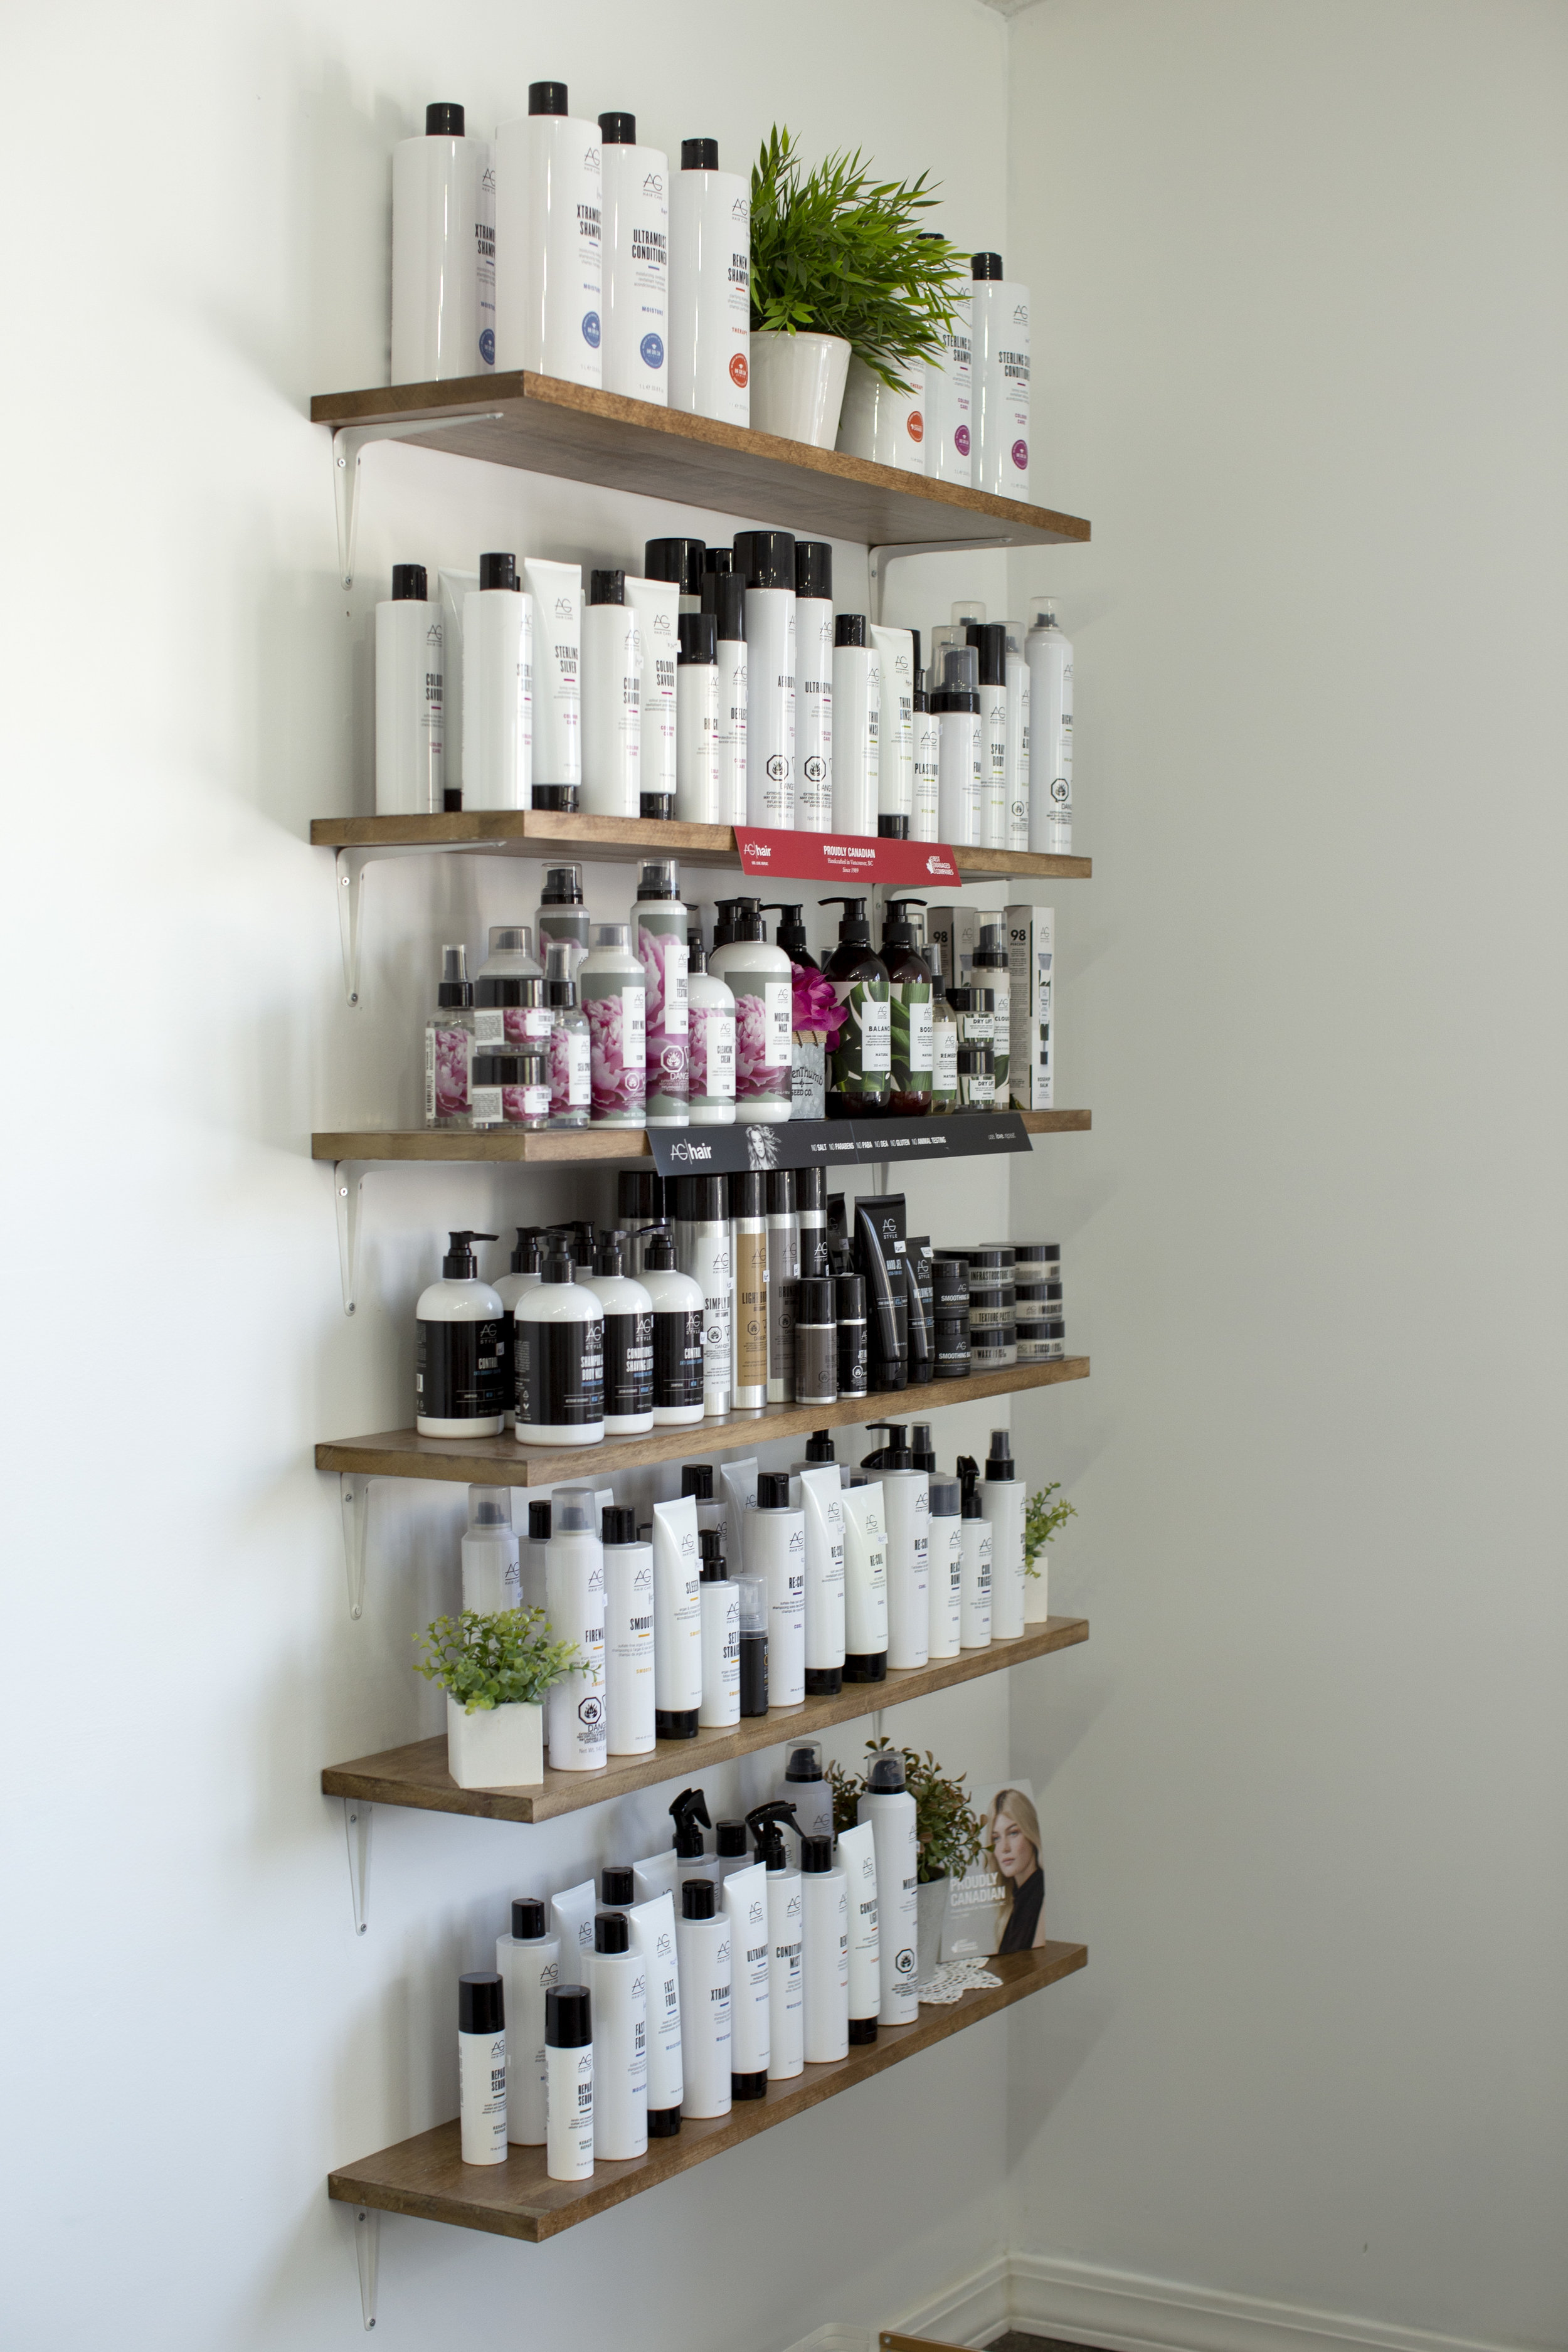 AG HAIR CARE PRODUCTS -